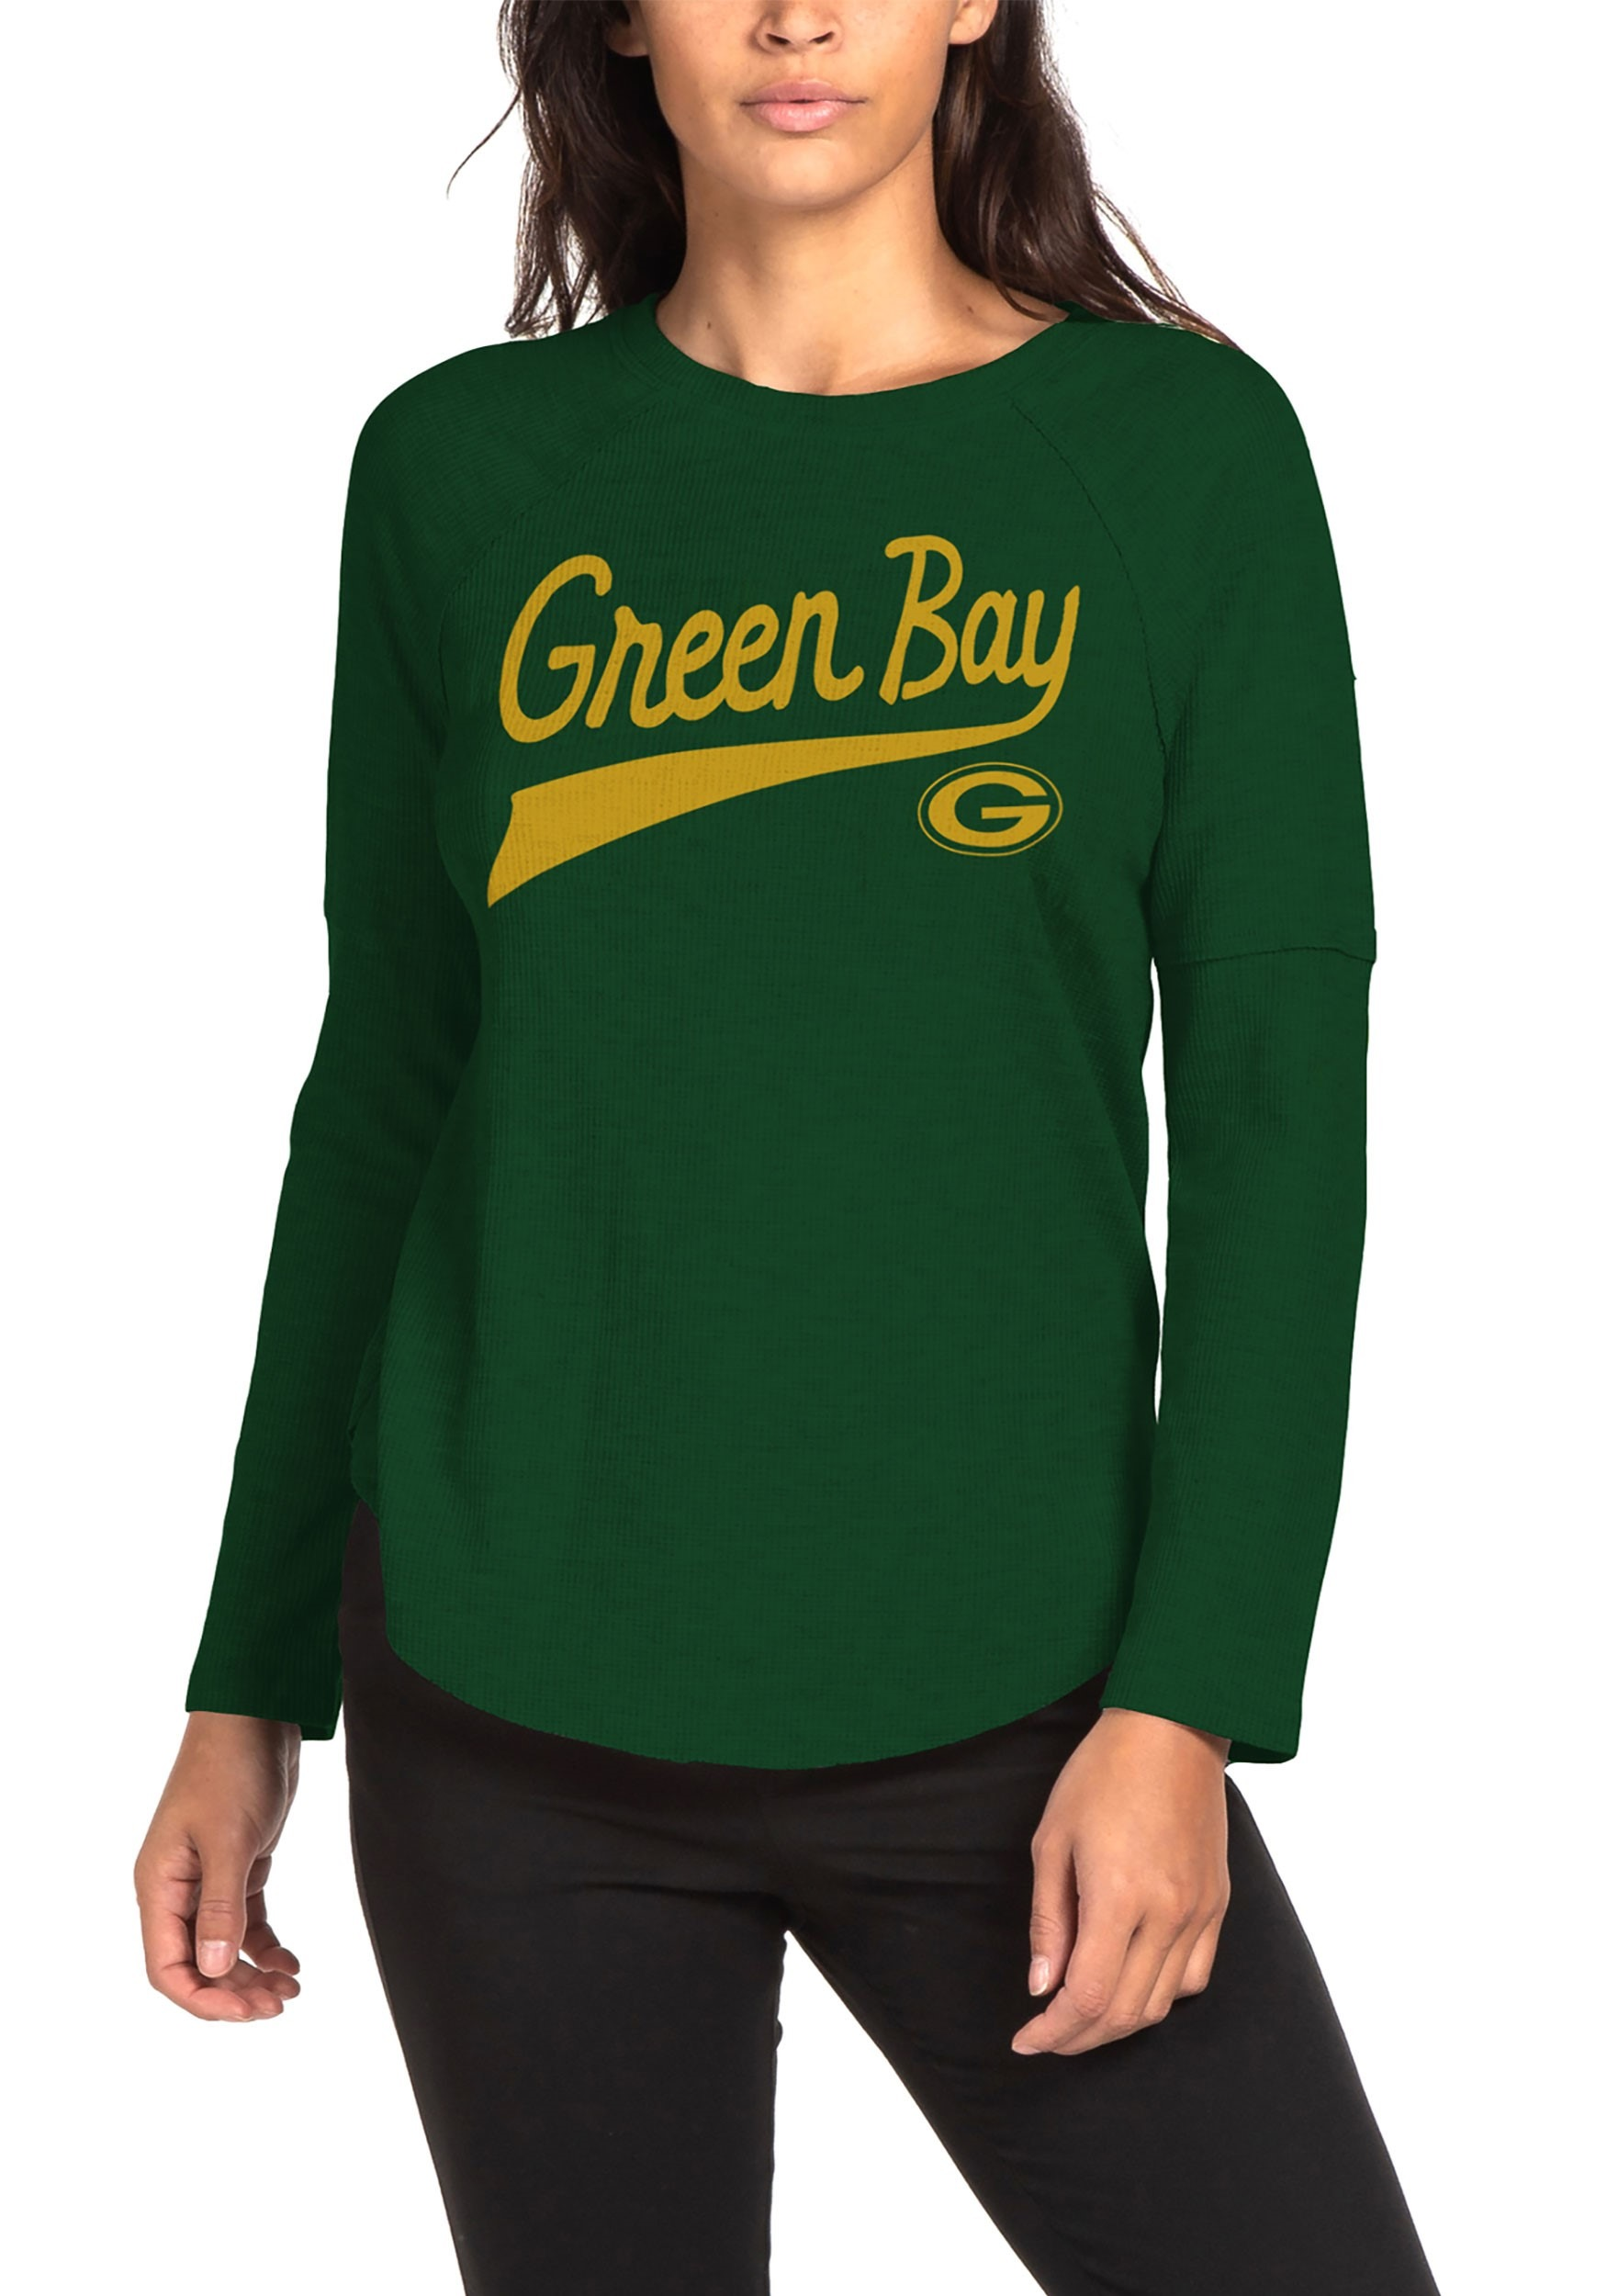 744f1018 Green Bay Packers Womens Hunter Green Super Soft Thermal